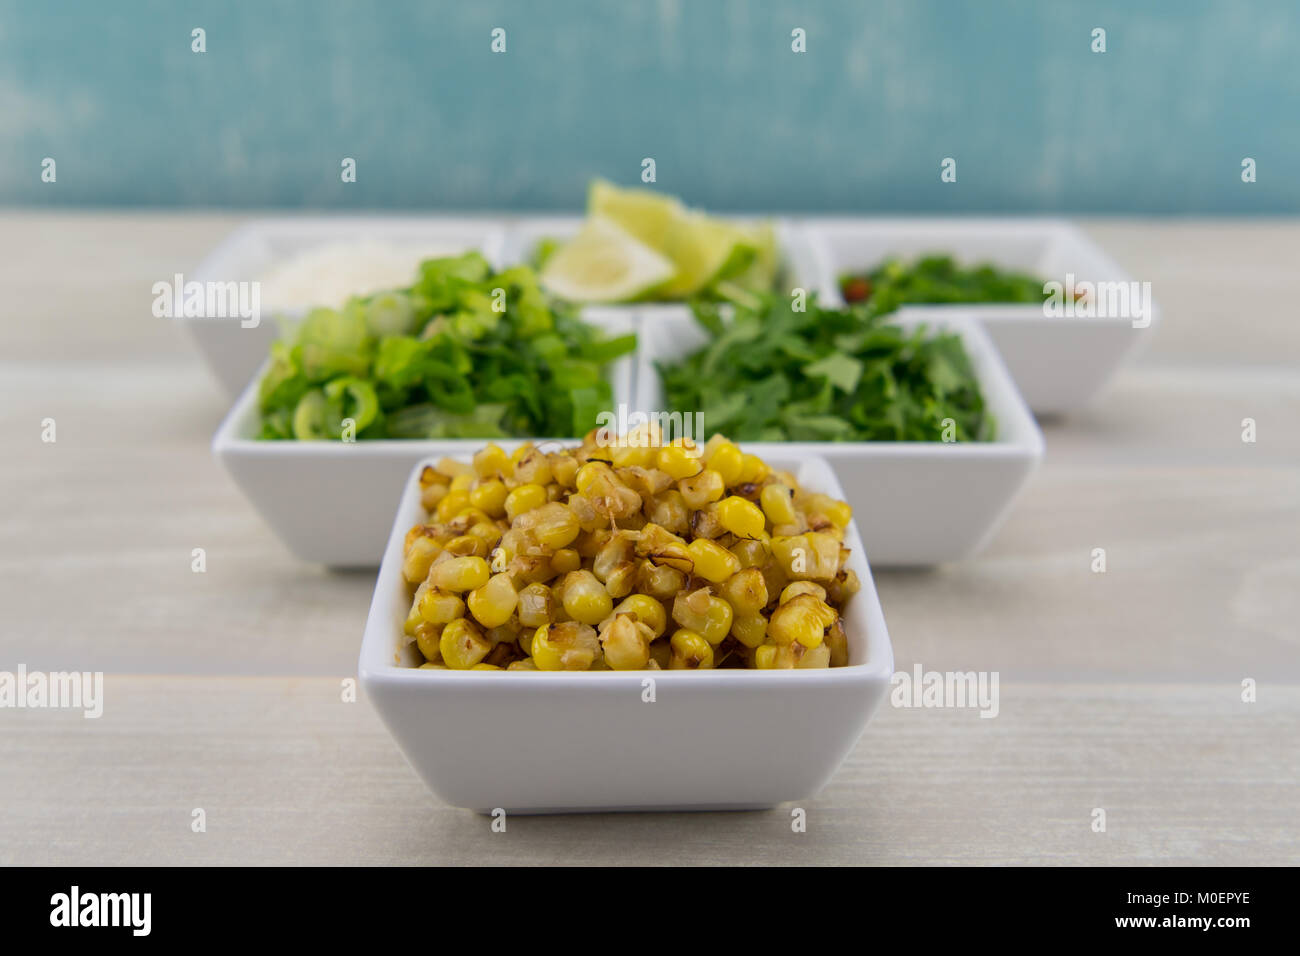 Roasted Corn in White Bowl in front of other seasonings - Stock Image